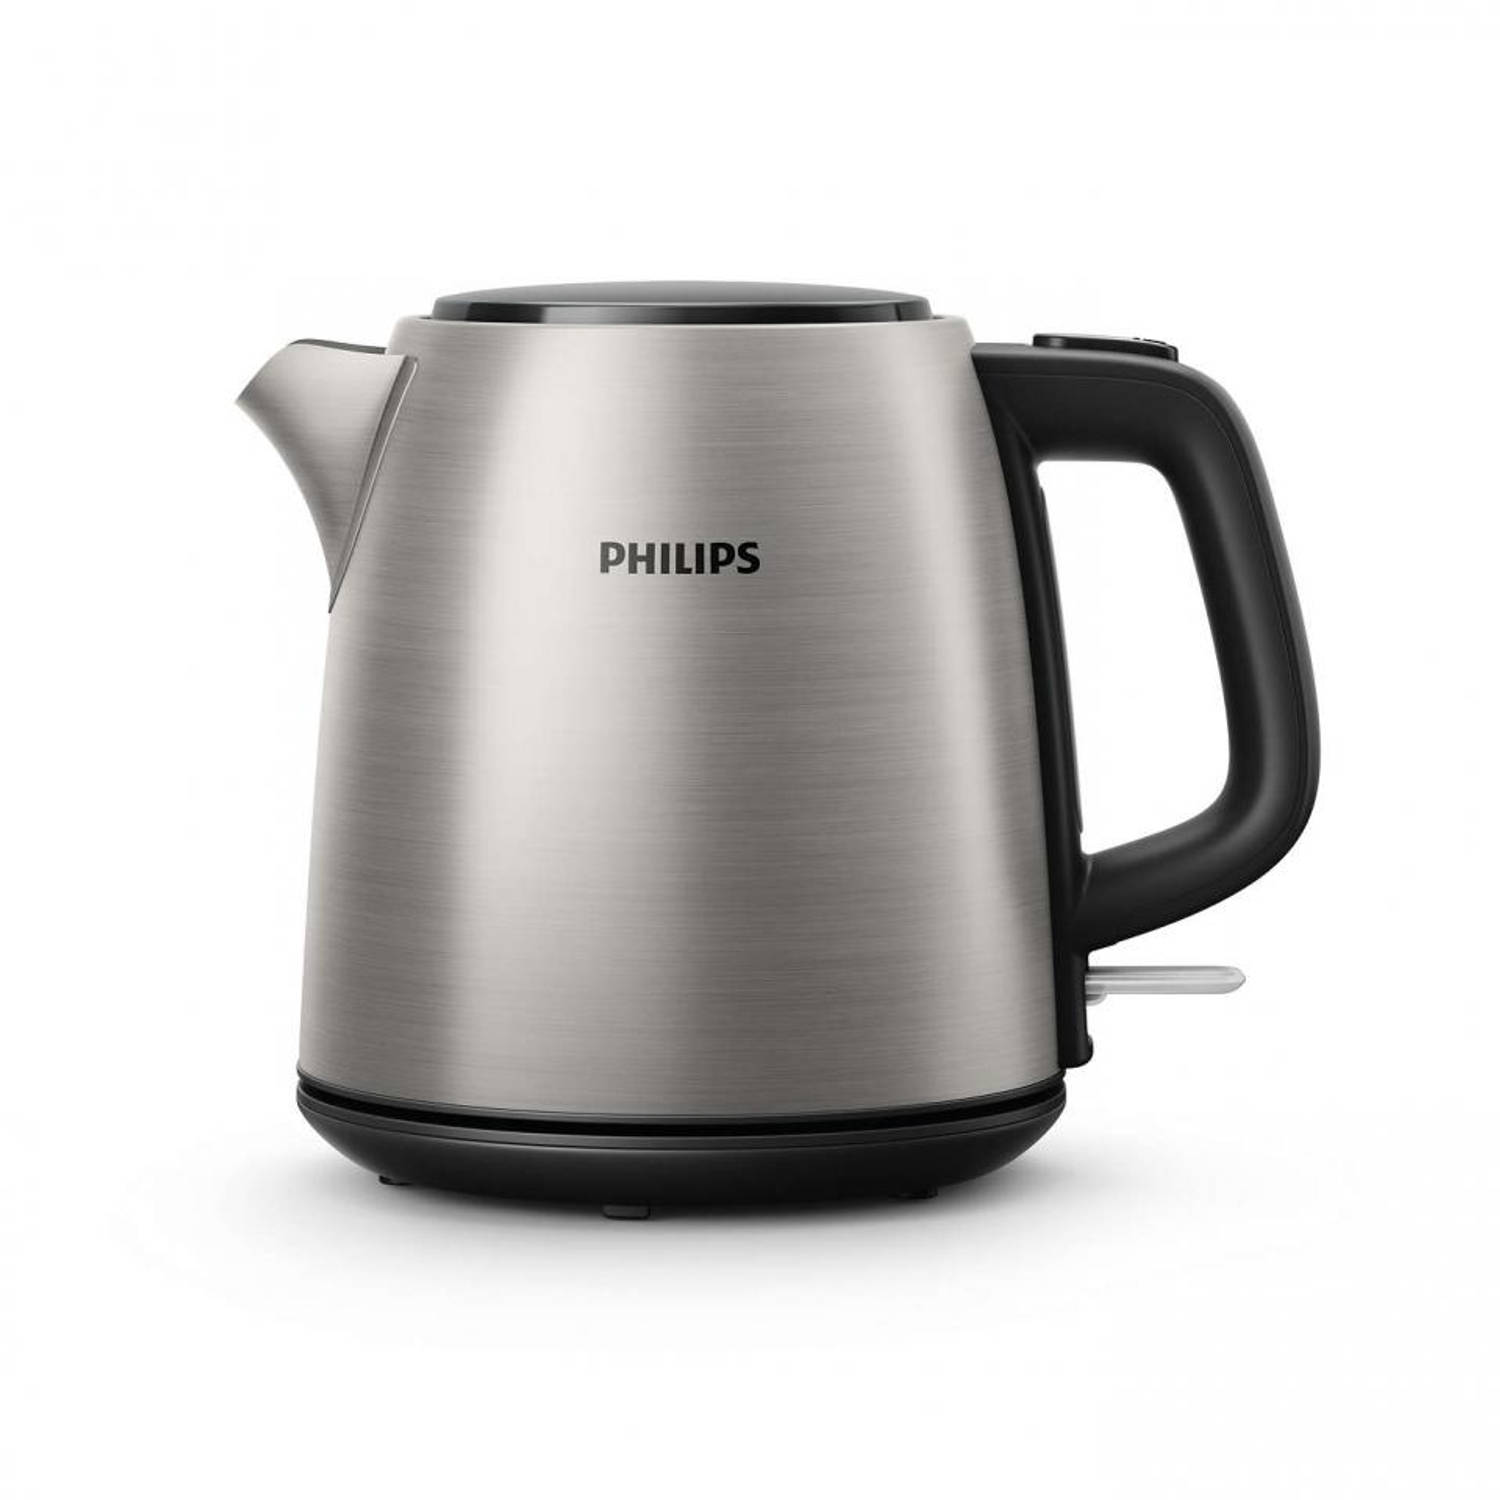 Philips waterkoker Daily Collection HD9348/10 - RVS - 1,0 liter